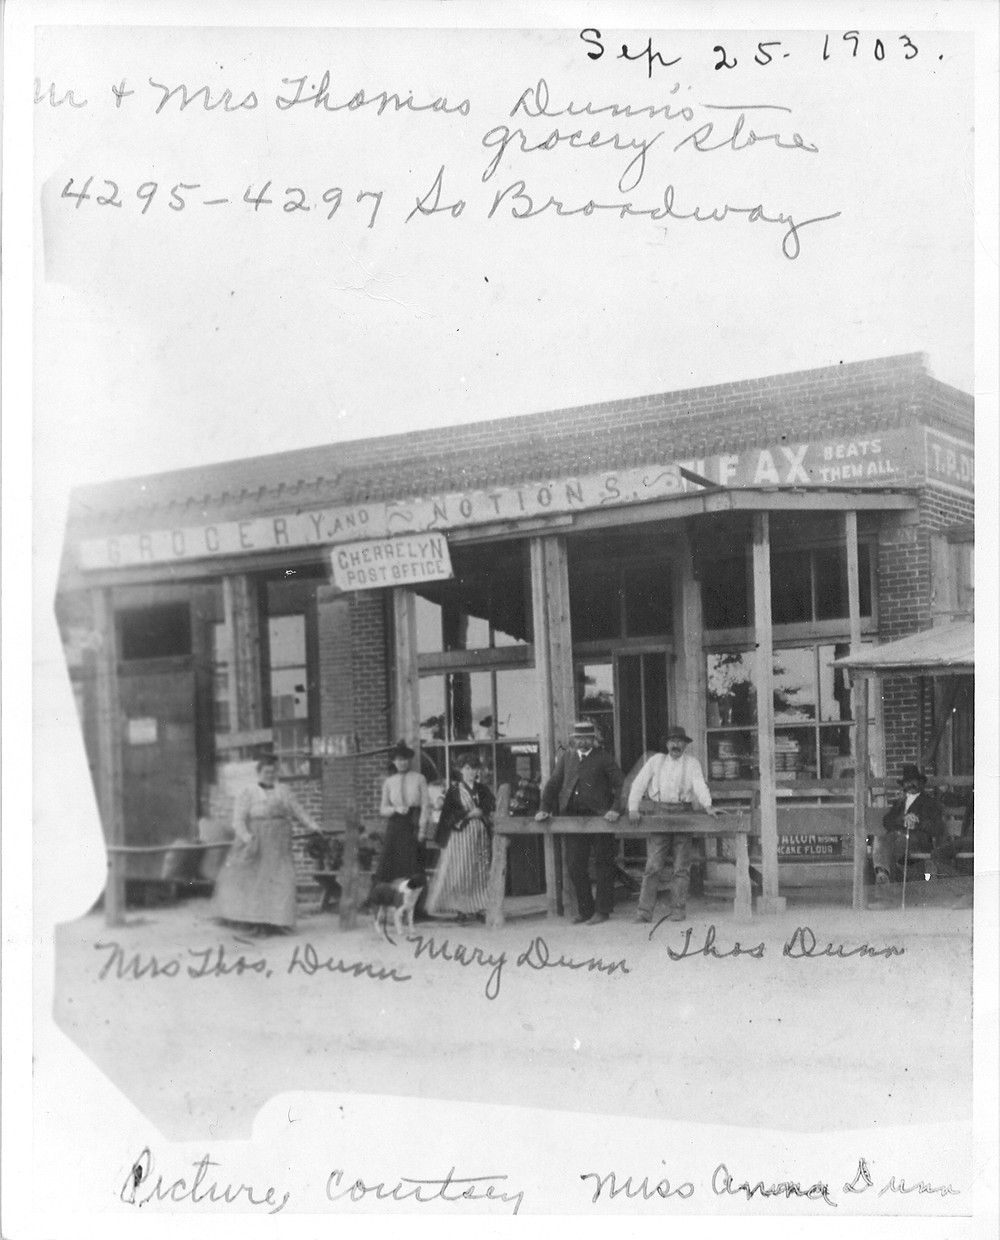 The Dunn family's grocery store in 1903. Today the site is the parking lot of Gold Sound at the northwest corner of Quincy and Broadway.